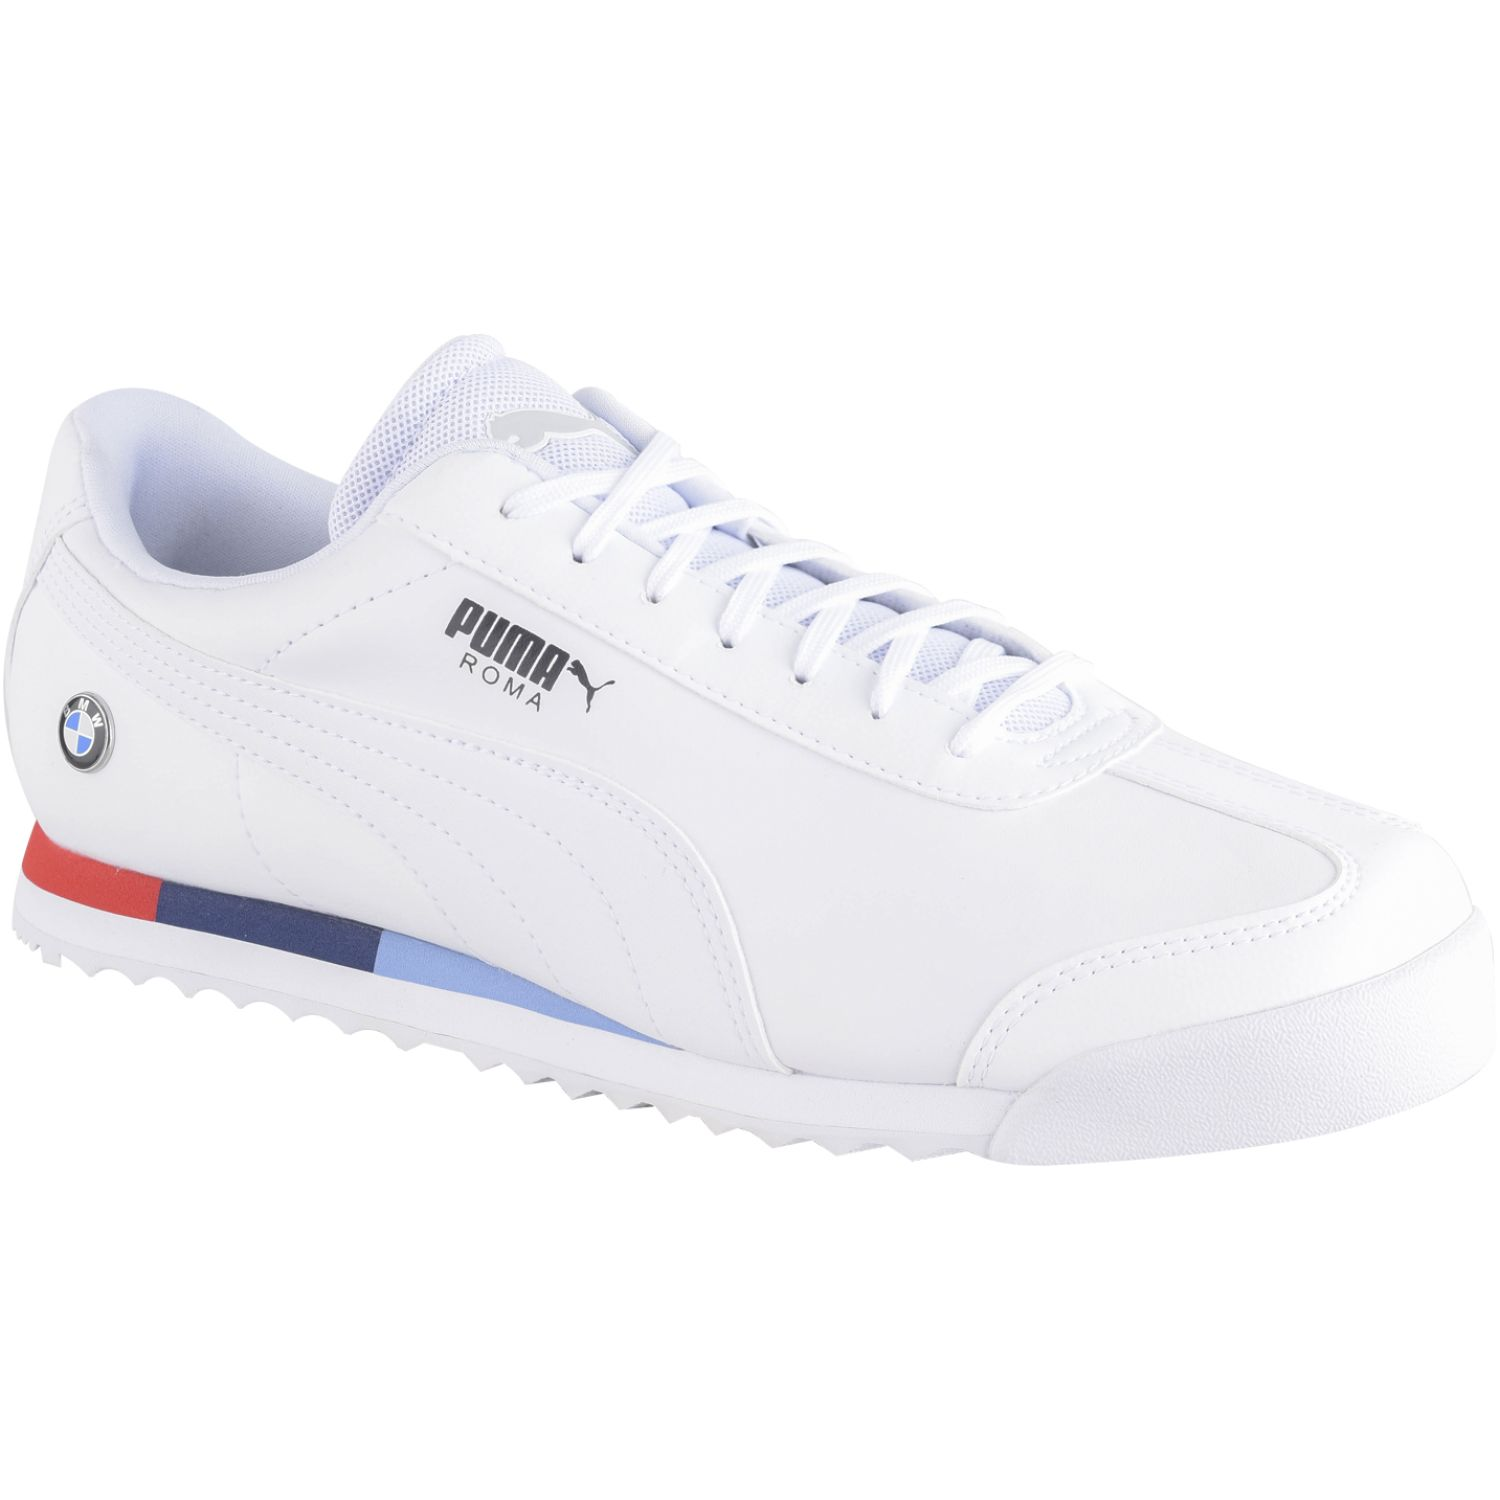 Puma BMW MMS ROMA Blanco Walking | platanitos.com